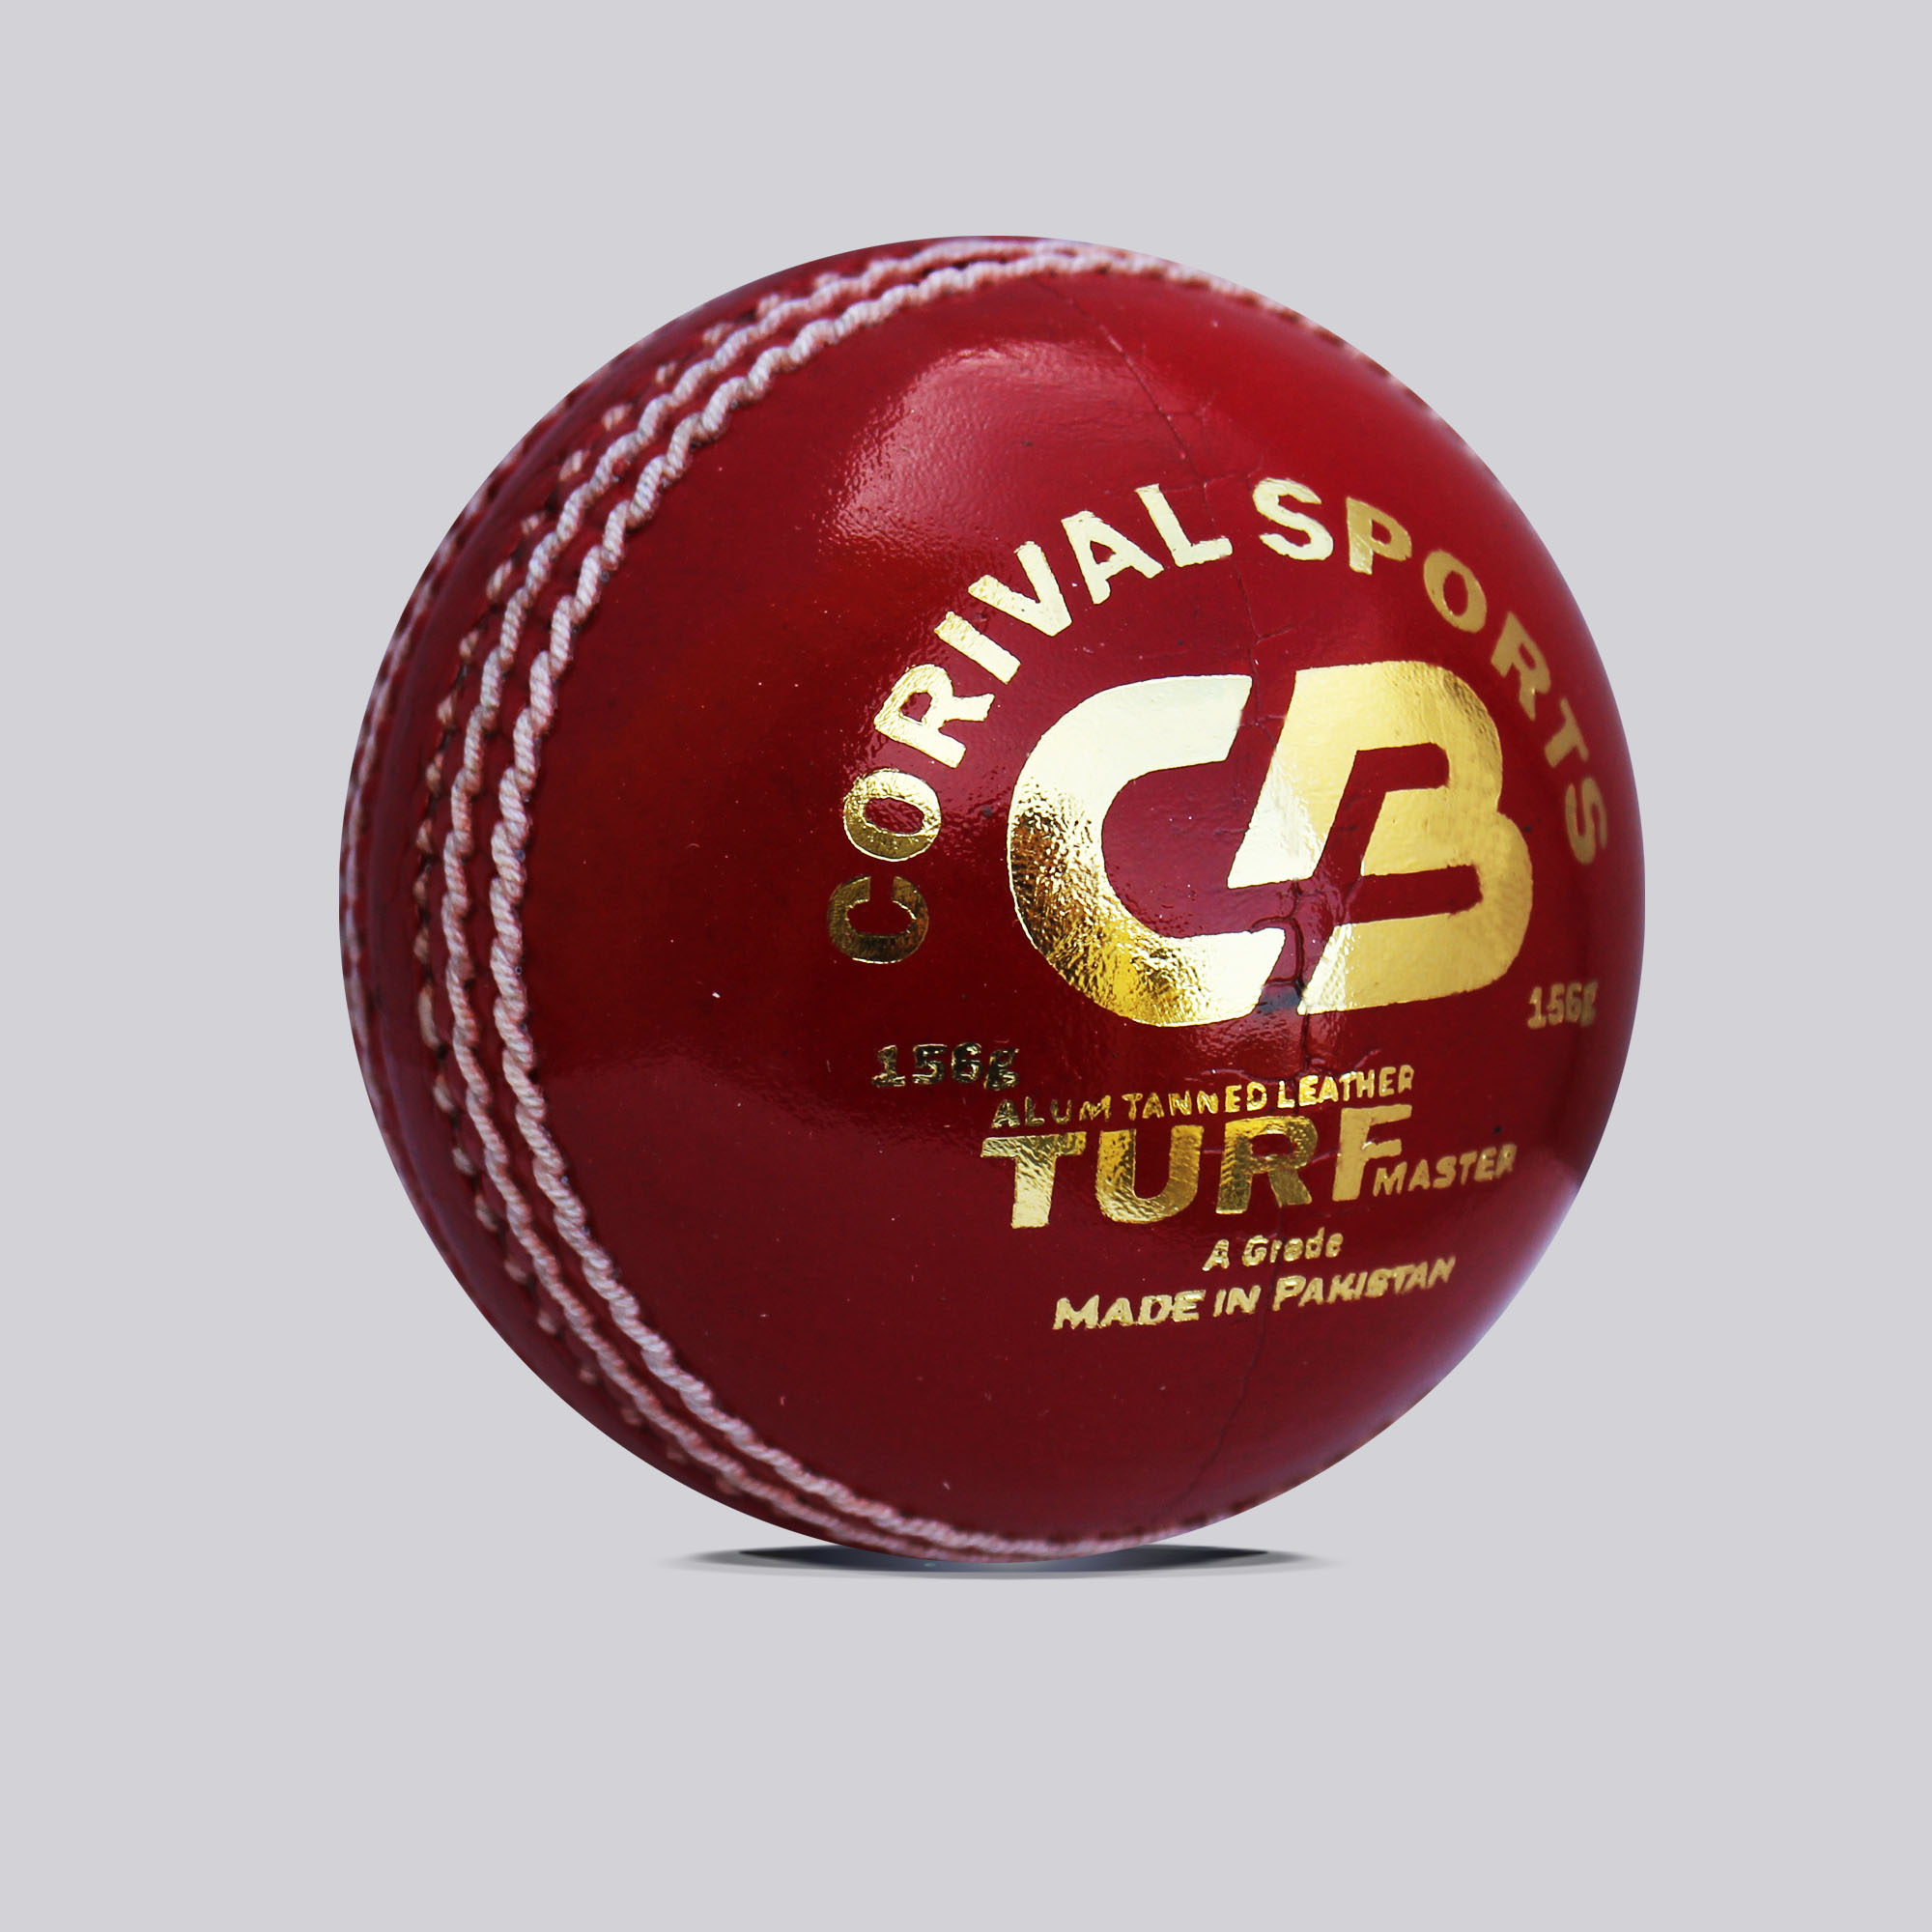 Cb Turf Master Alum Tanned Leather Cricket Ball